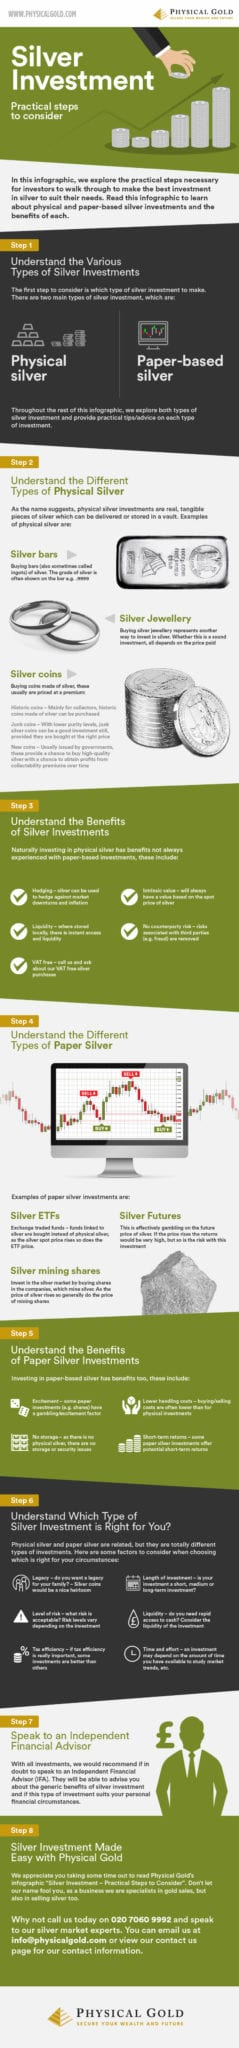 Types of Silver Investment